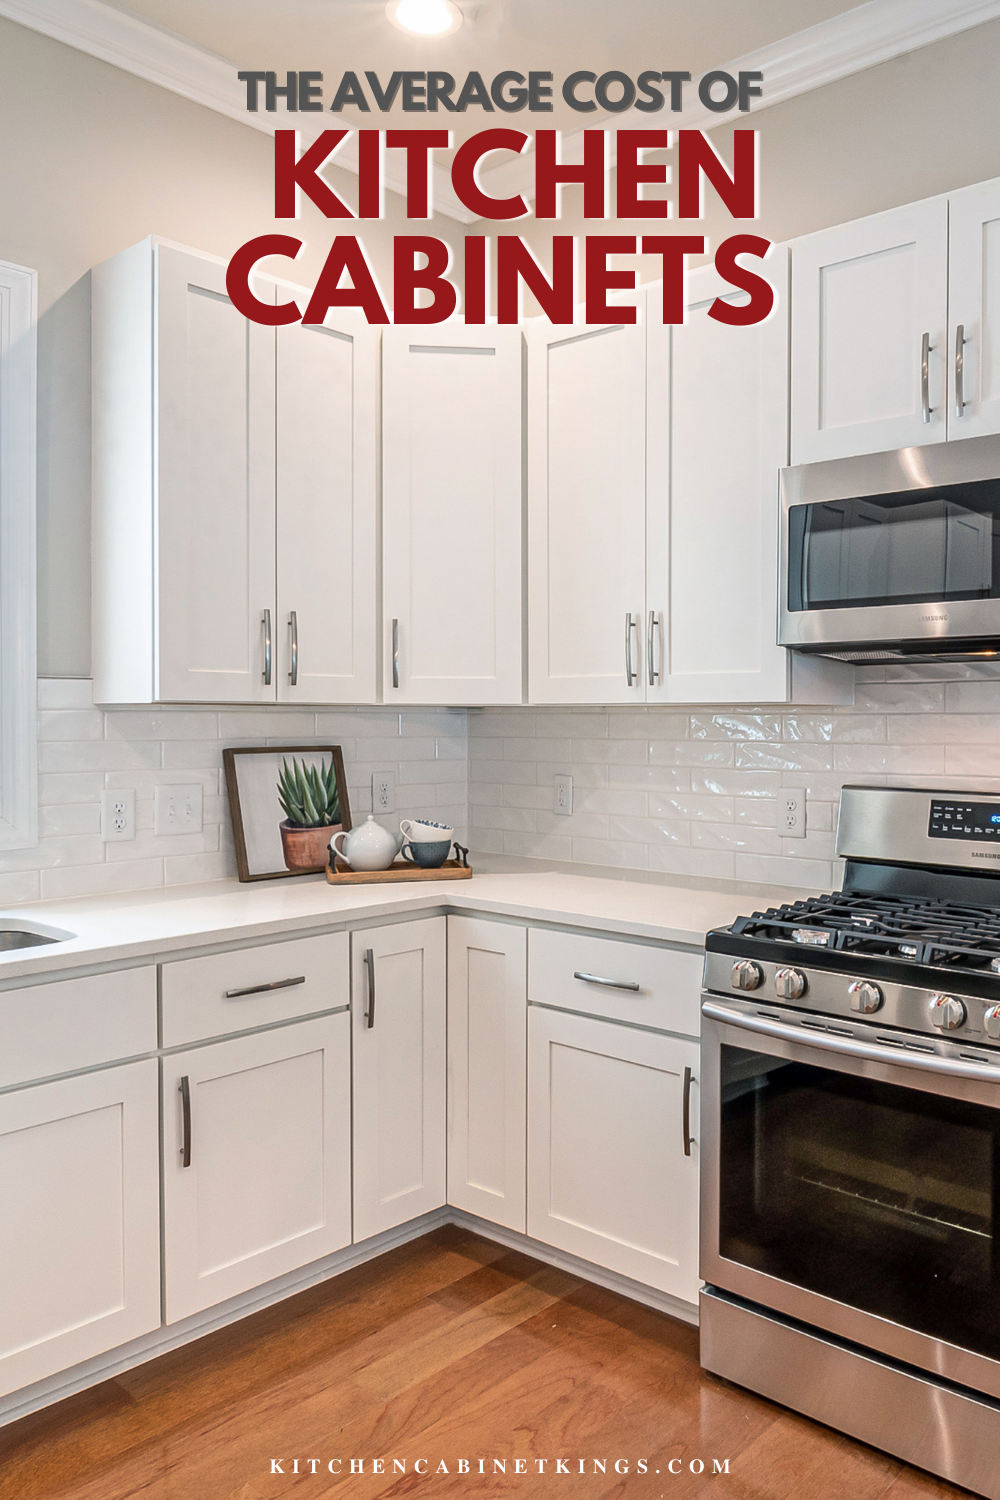 The Average Cost To Install Kitchen Cabinets In 2021 Cost Of Kitchen Cabinets Kitchen Cabinet Kings Kitchen Inspirations